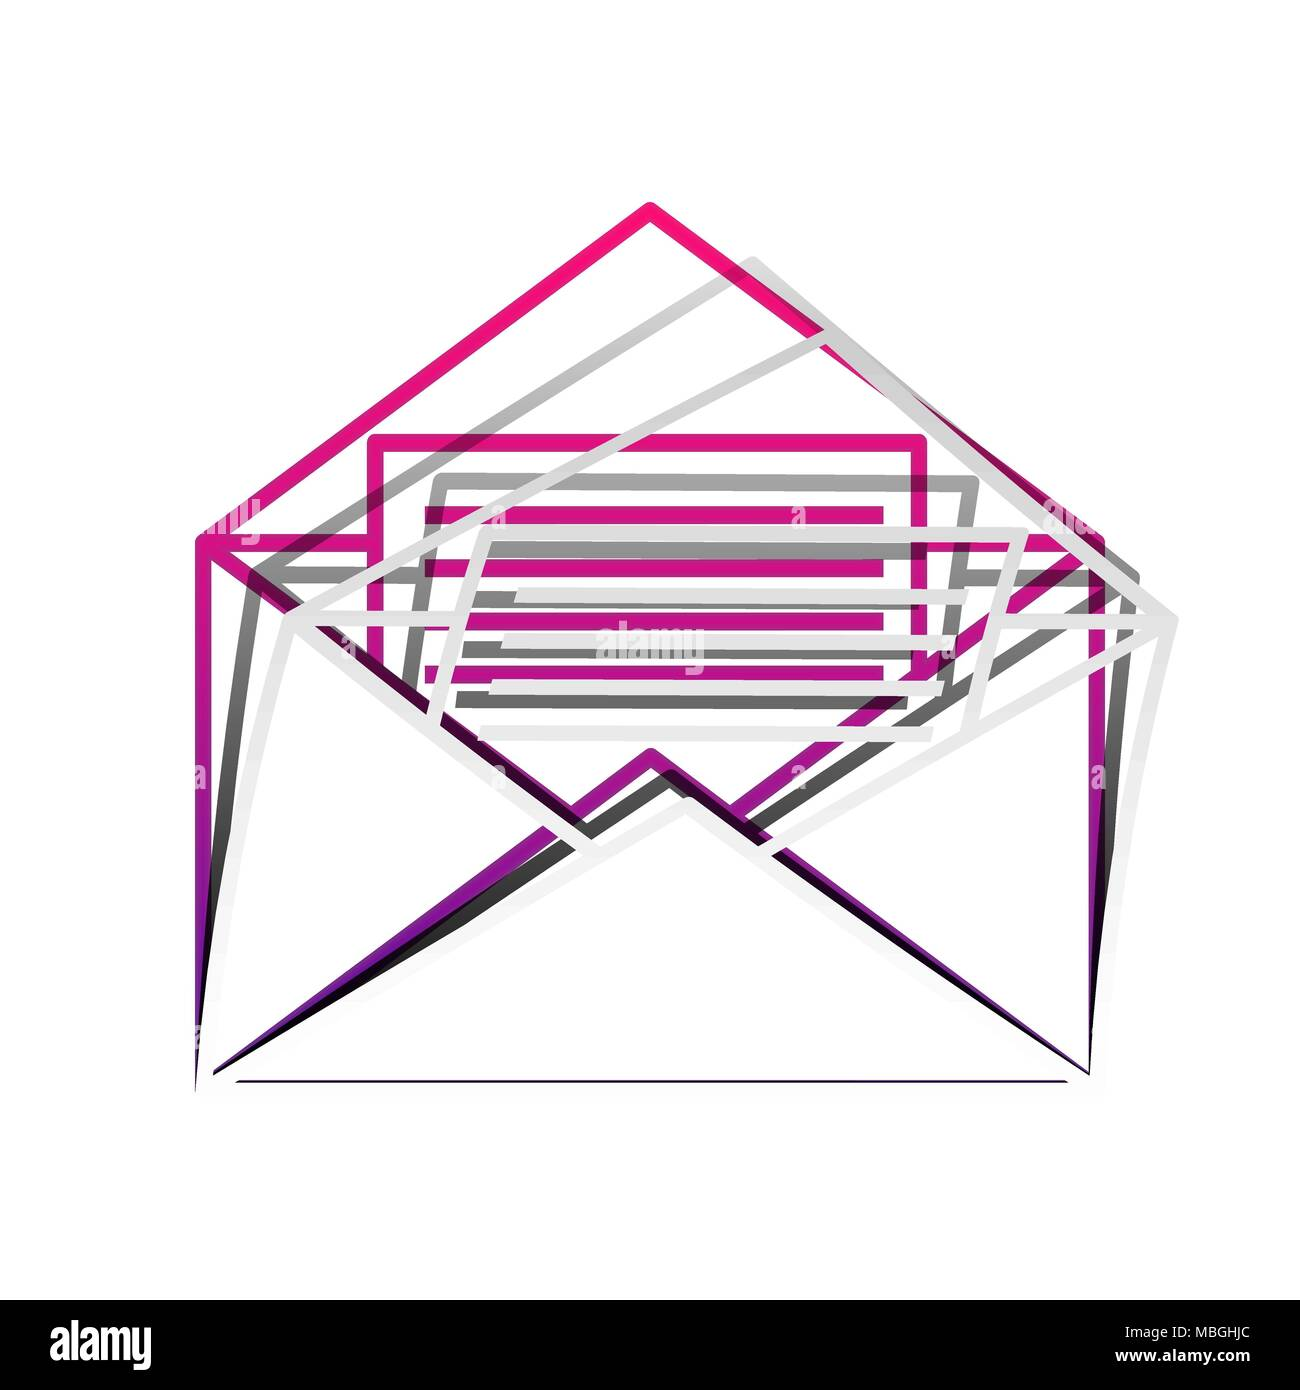 Letter in an envelope sign illustration. Vector. Detachable paper with shadow at underlying layer with magenta-violet background. - Stock Image